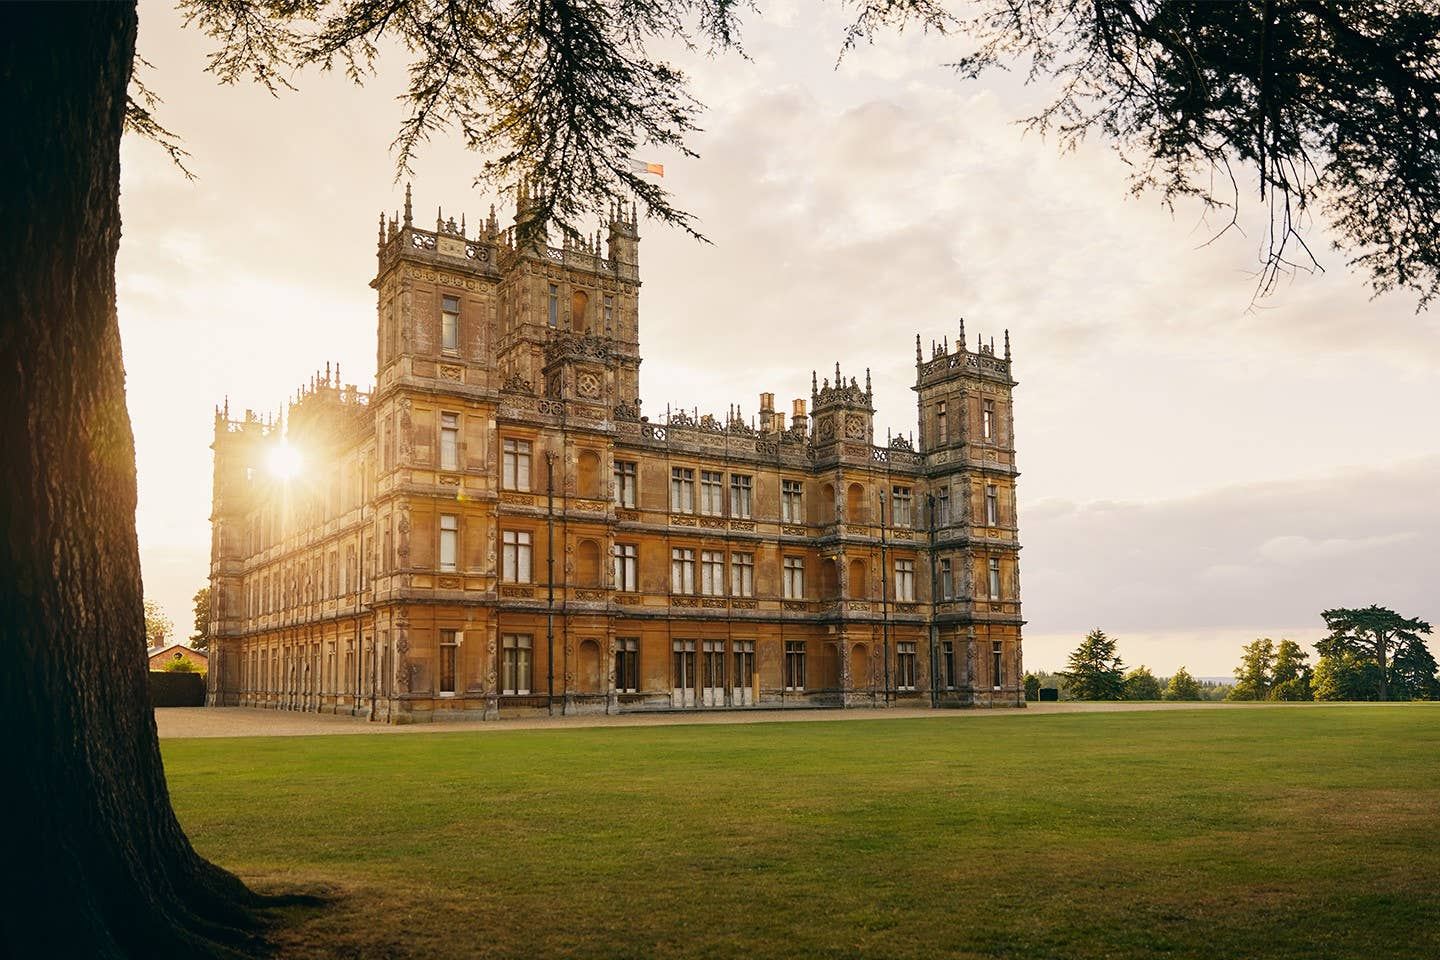 imagen 5 de Dormir en Highclere Castle, el castillo de Downton Abbey y el de Lord Carnarvon, mecenas de Howard Carter.